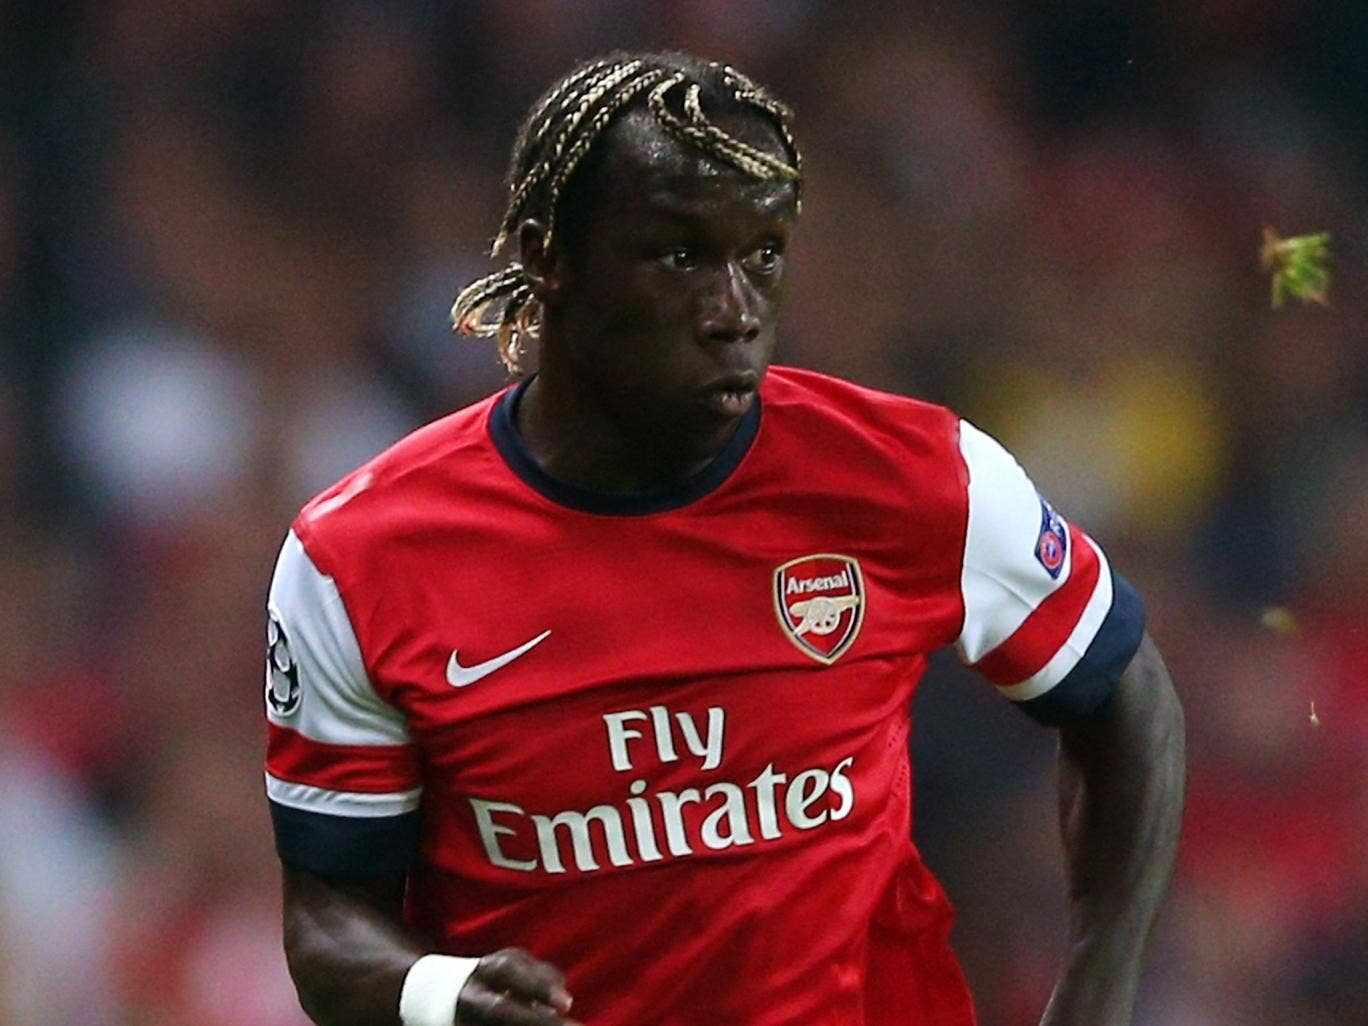 Bacary Sagna's Arsenal contract runs out at the end of the season